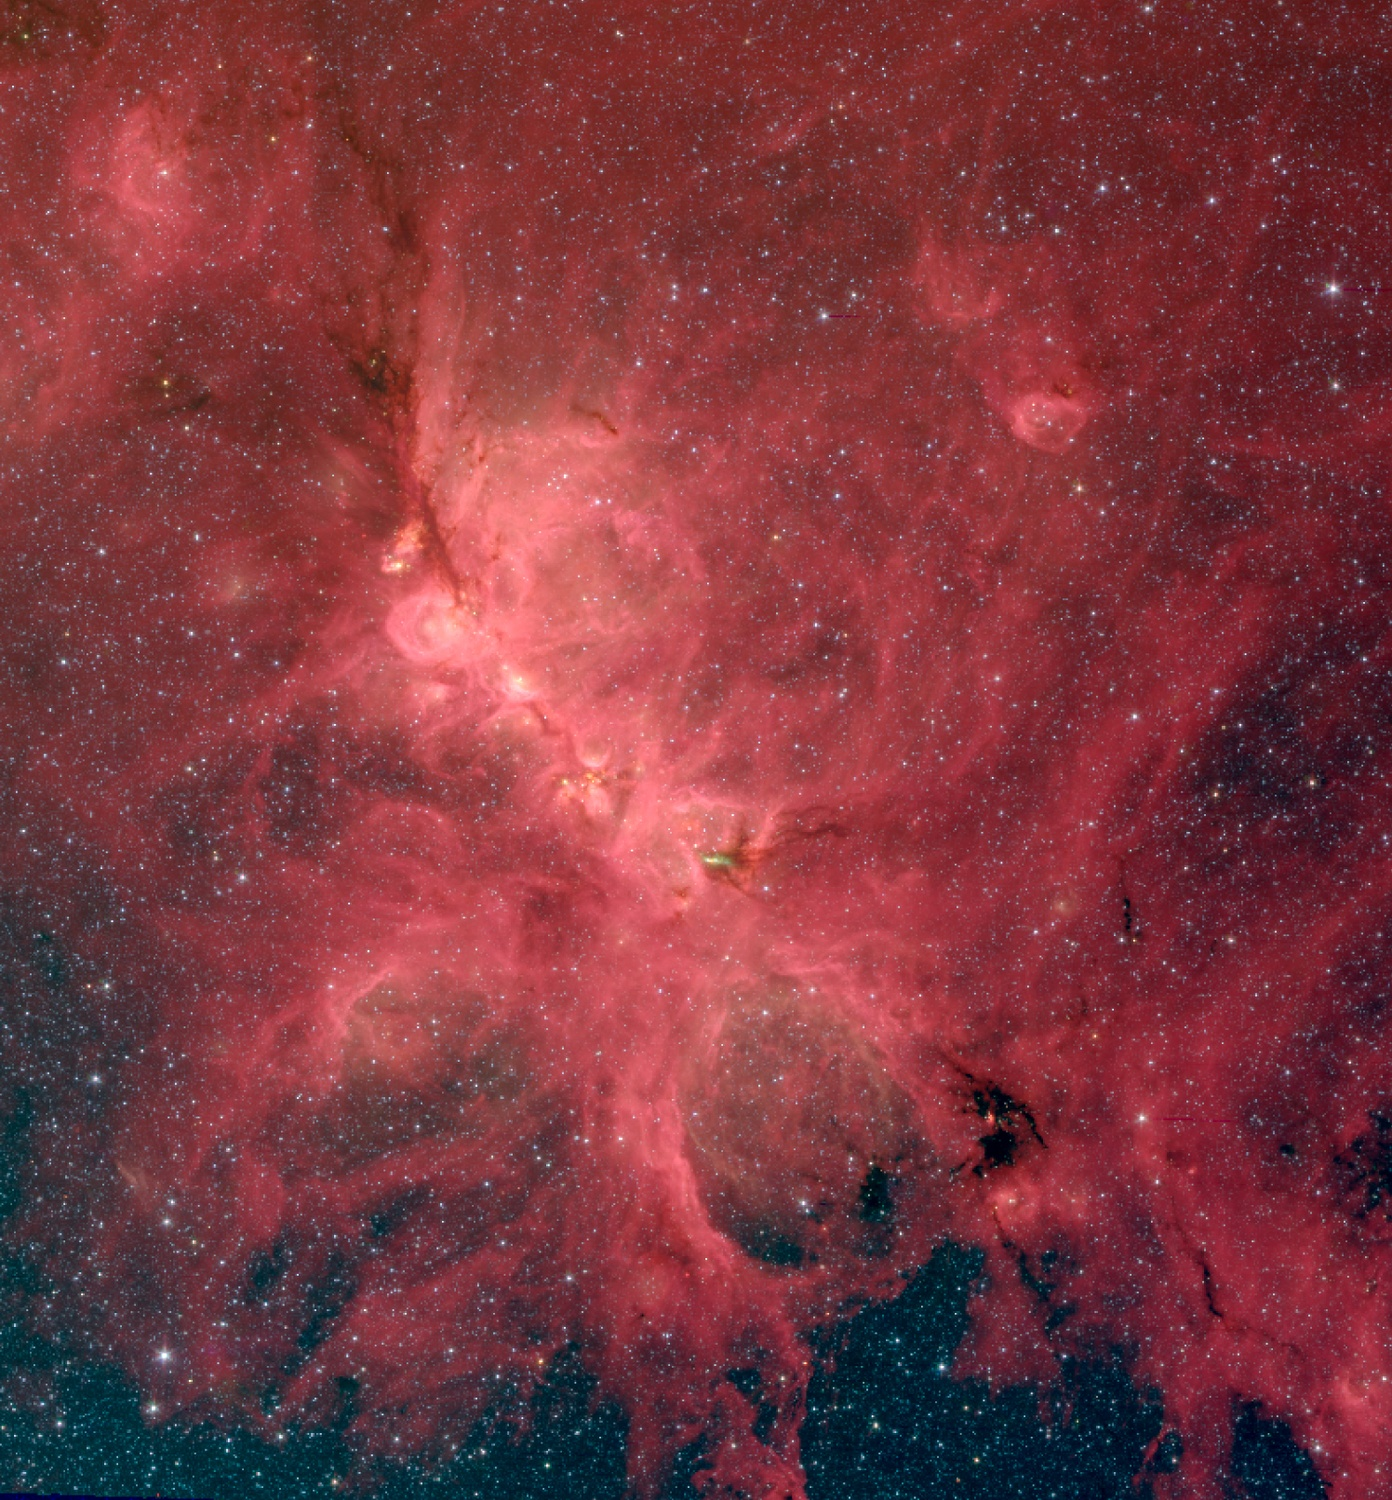 A new study of the Cat's Paw Nebula found that magnetic fields influence star formation on a variety of scales, from hundreds of light-years down to a fraction of a light-year.